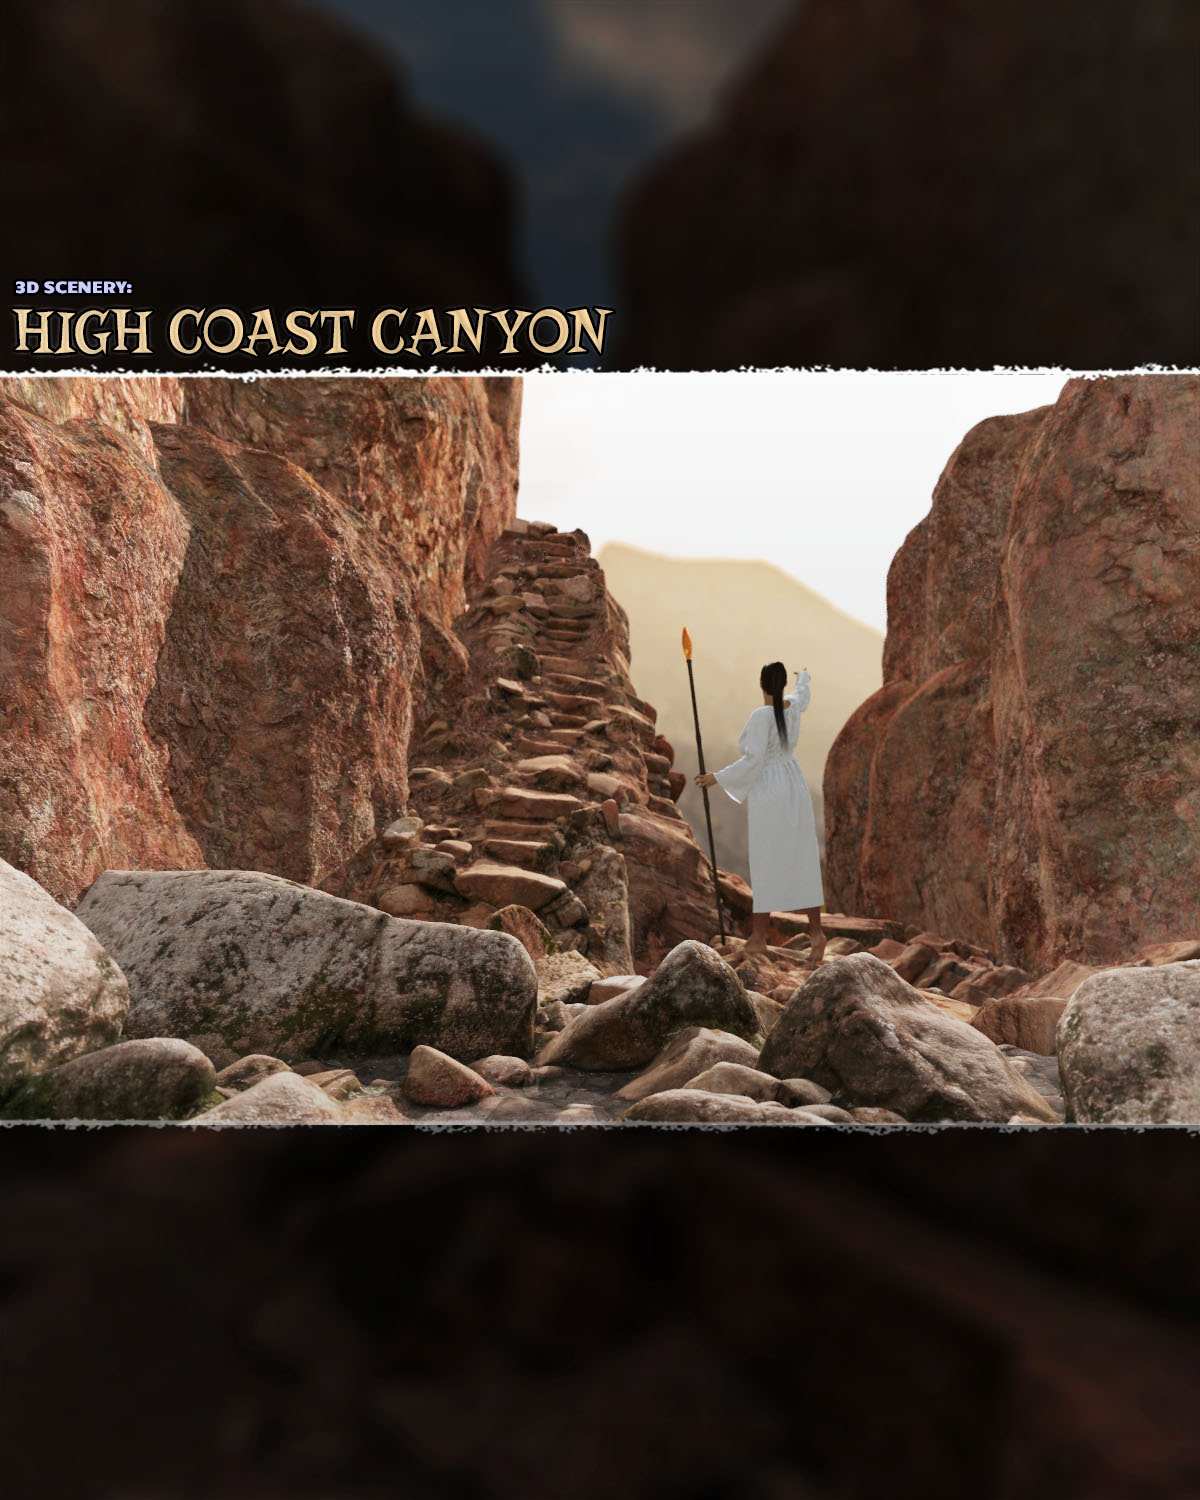 3d scenery: high coast canyon 3d models shaaramuse3d